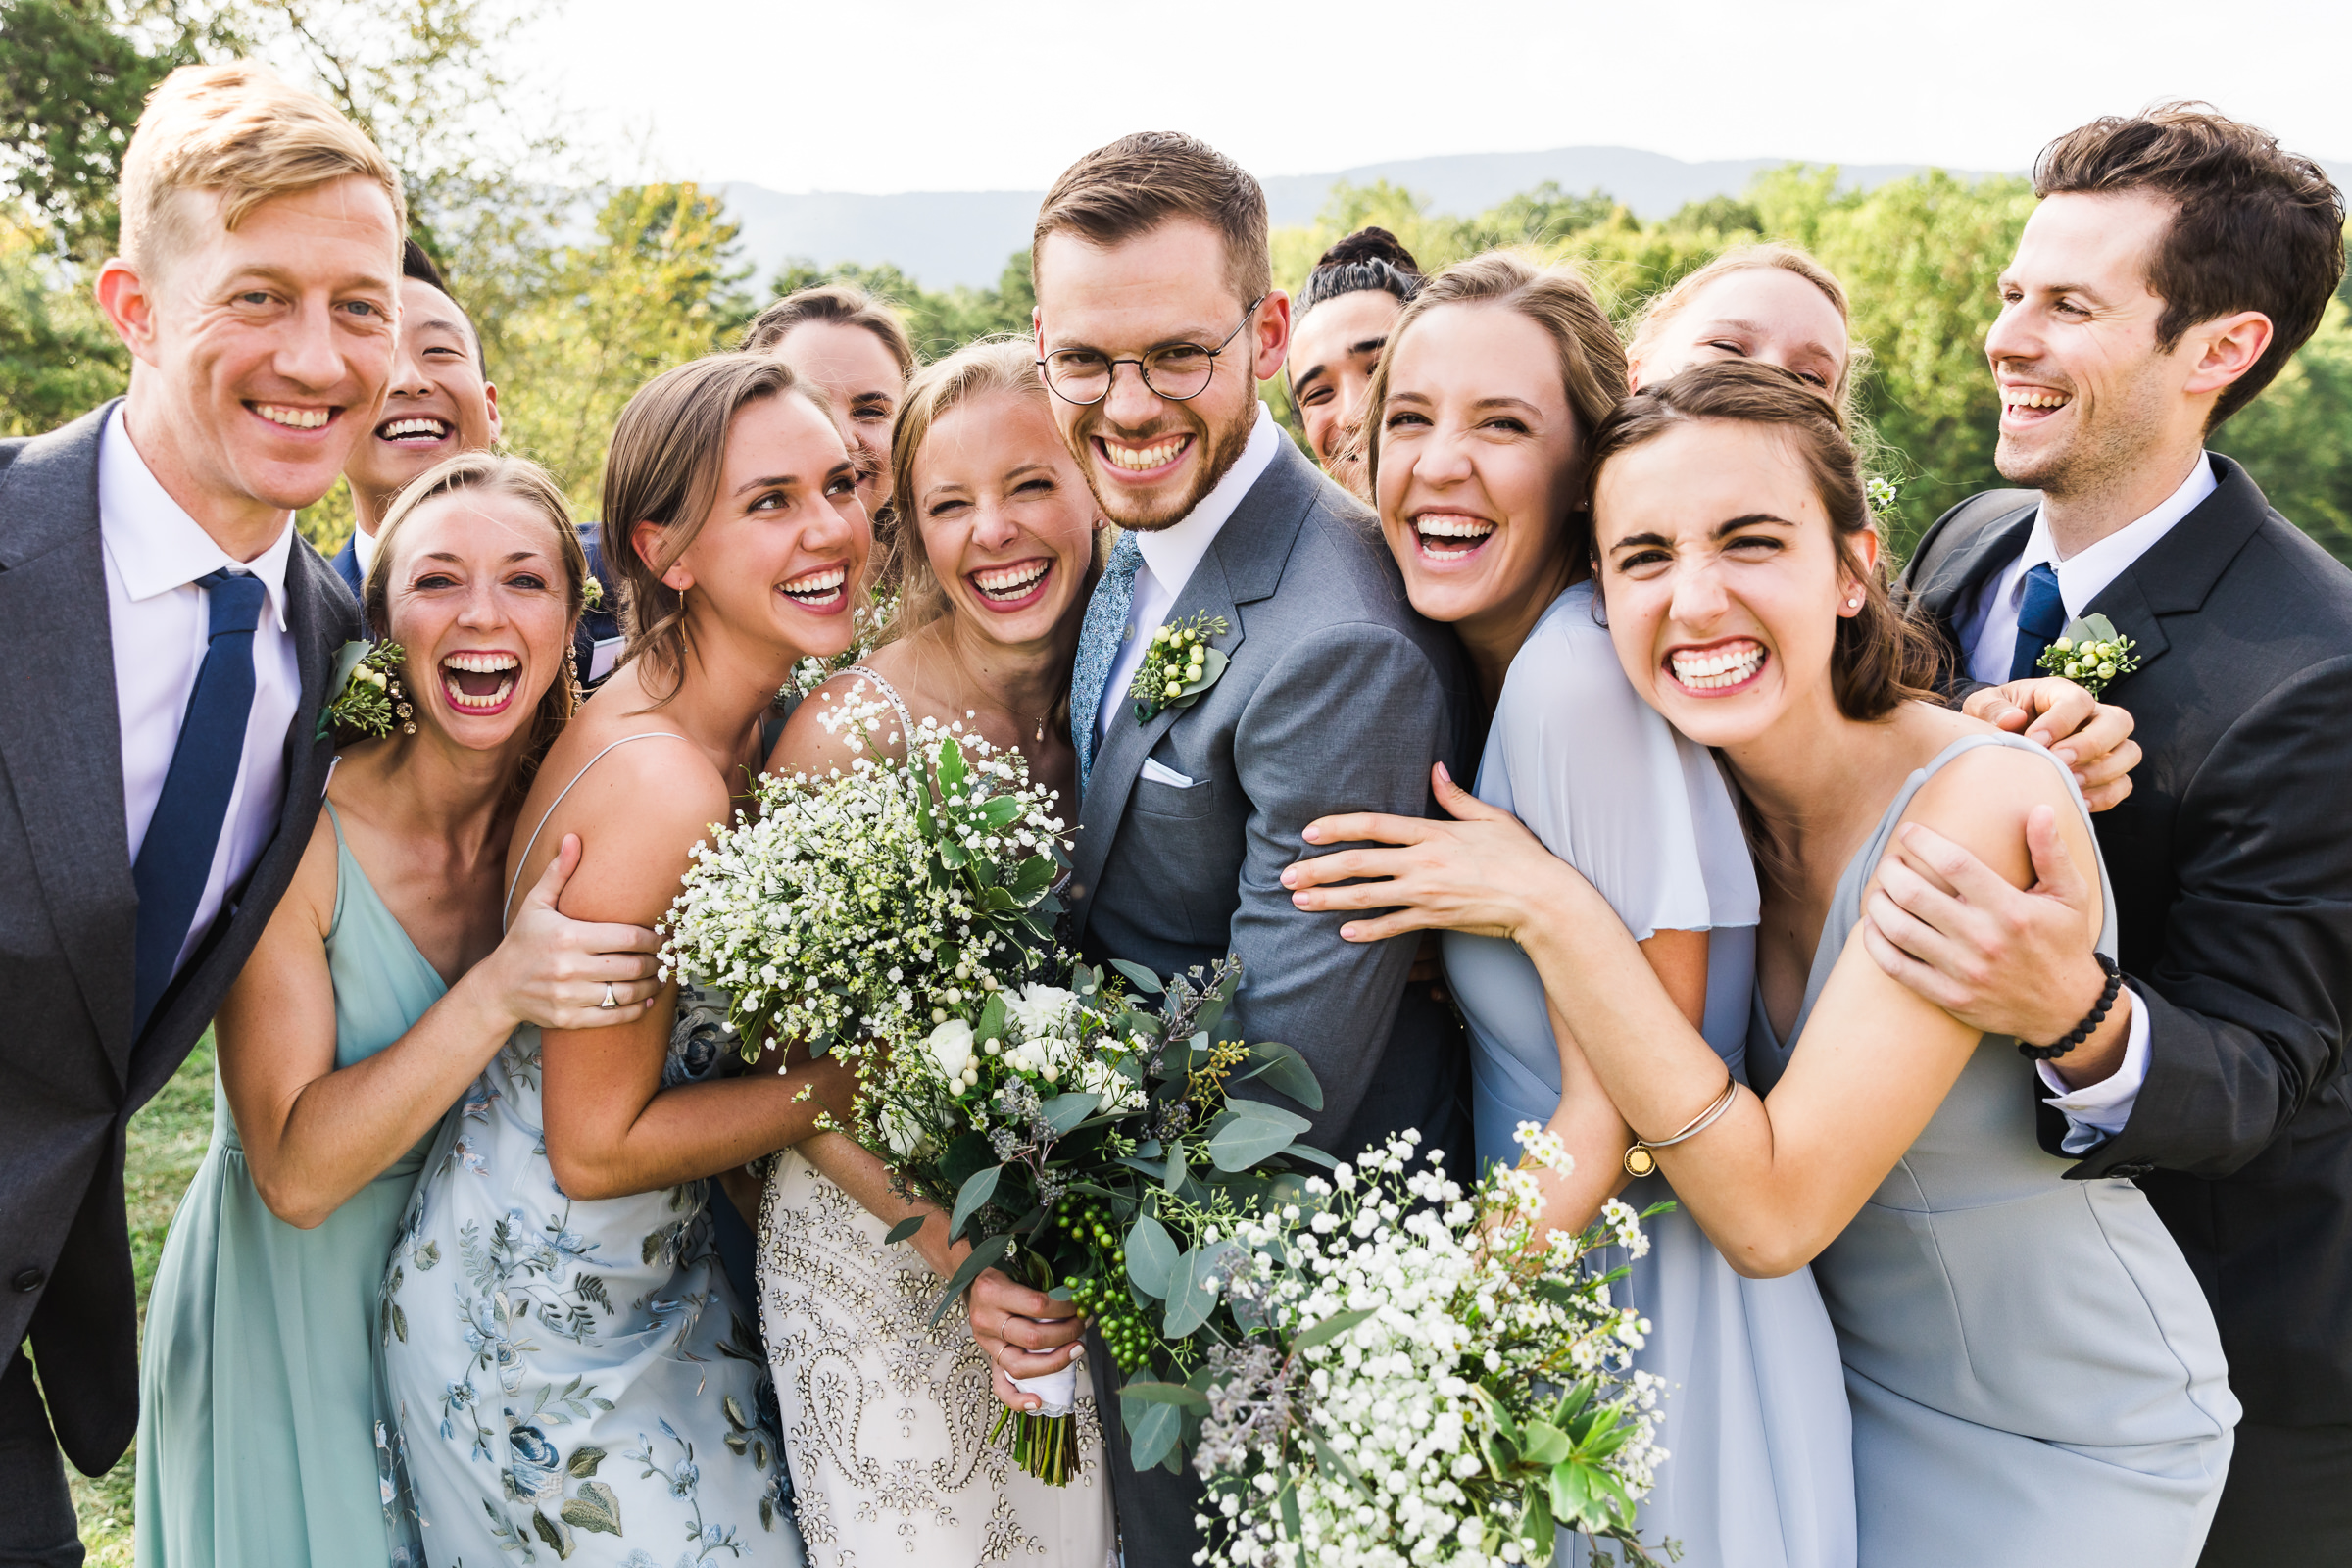 Huge smiles all around with bride and groom - photo by Xiaoqi Li Photography